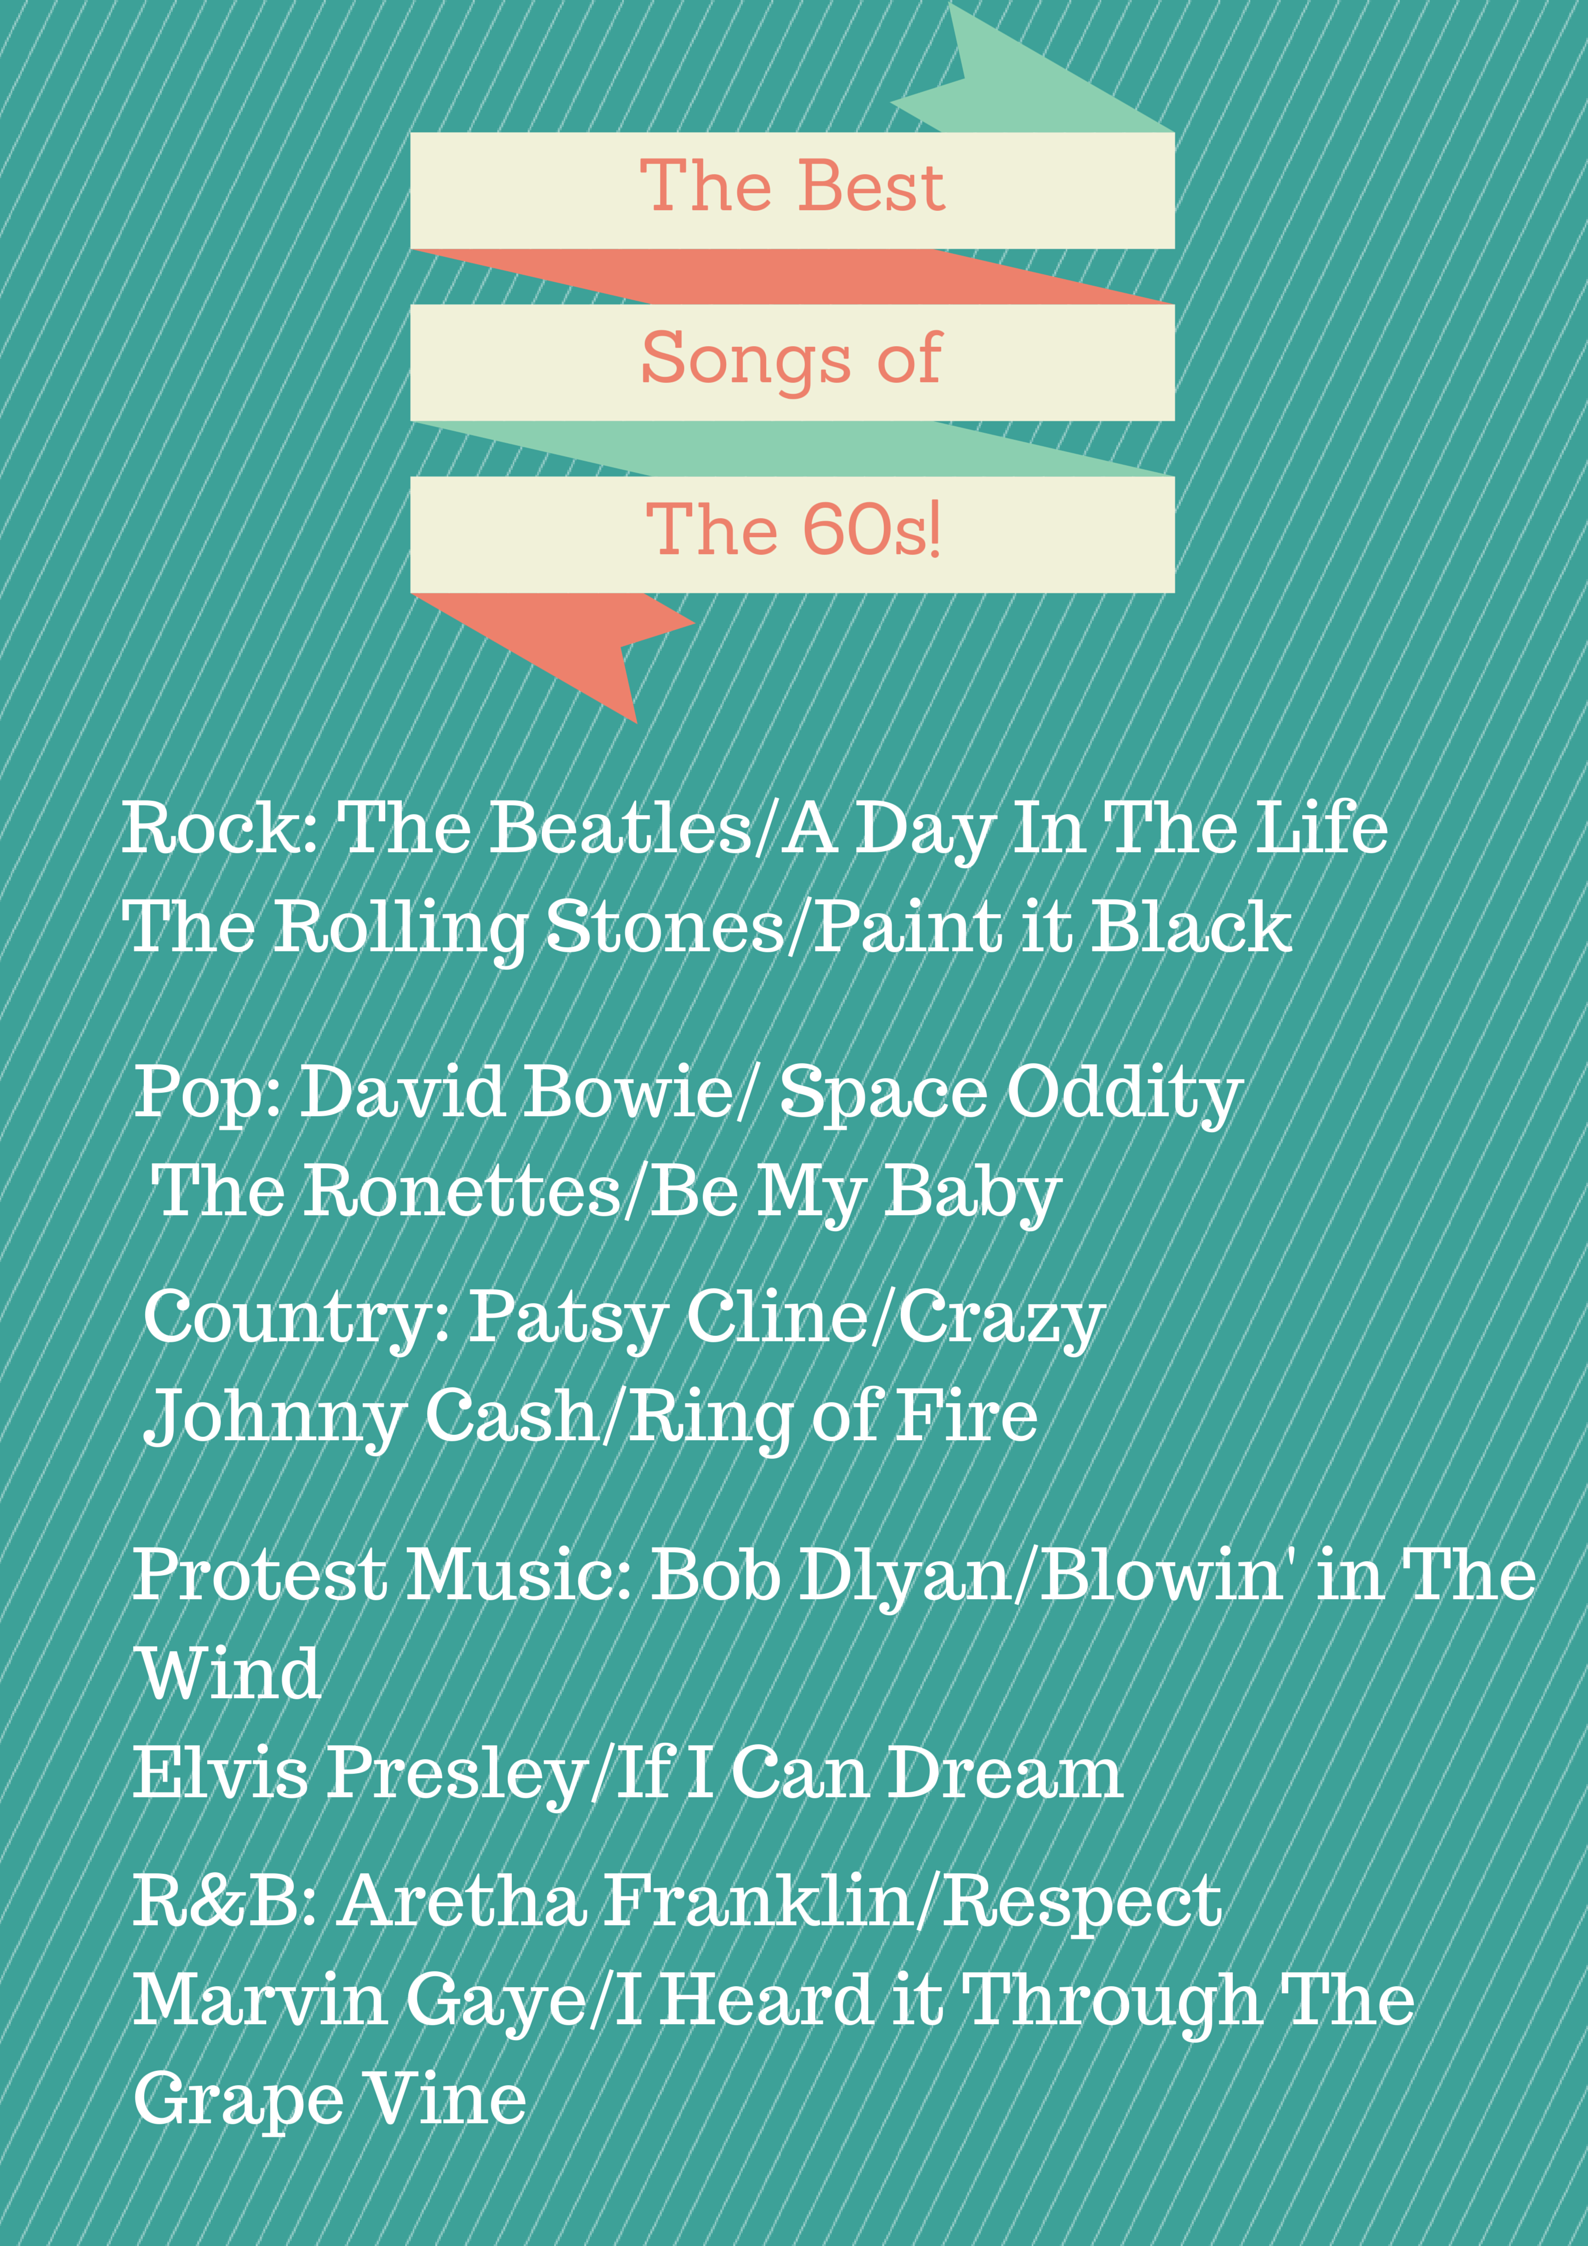 Best Songs Of the 60s